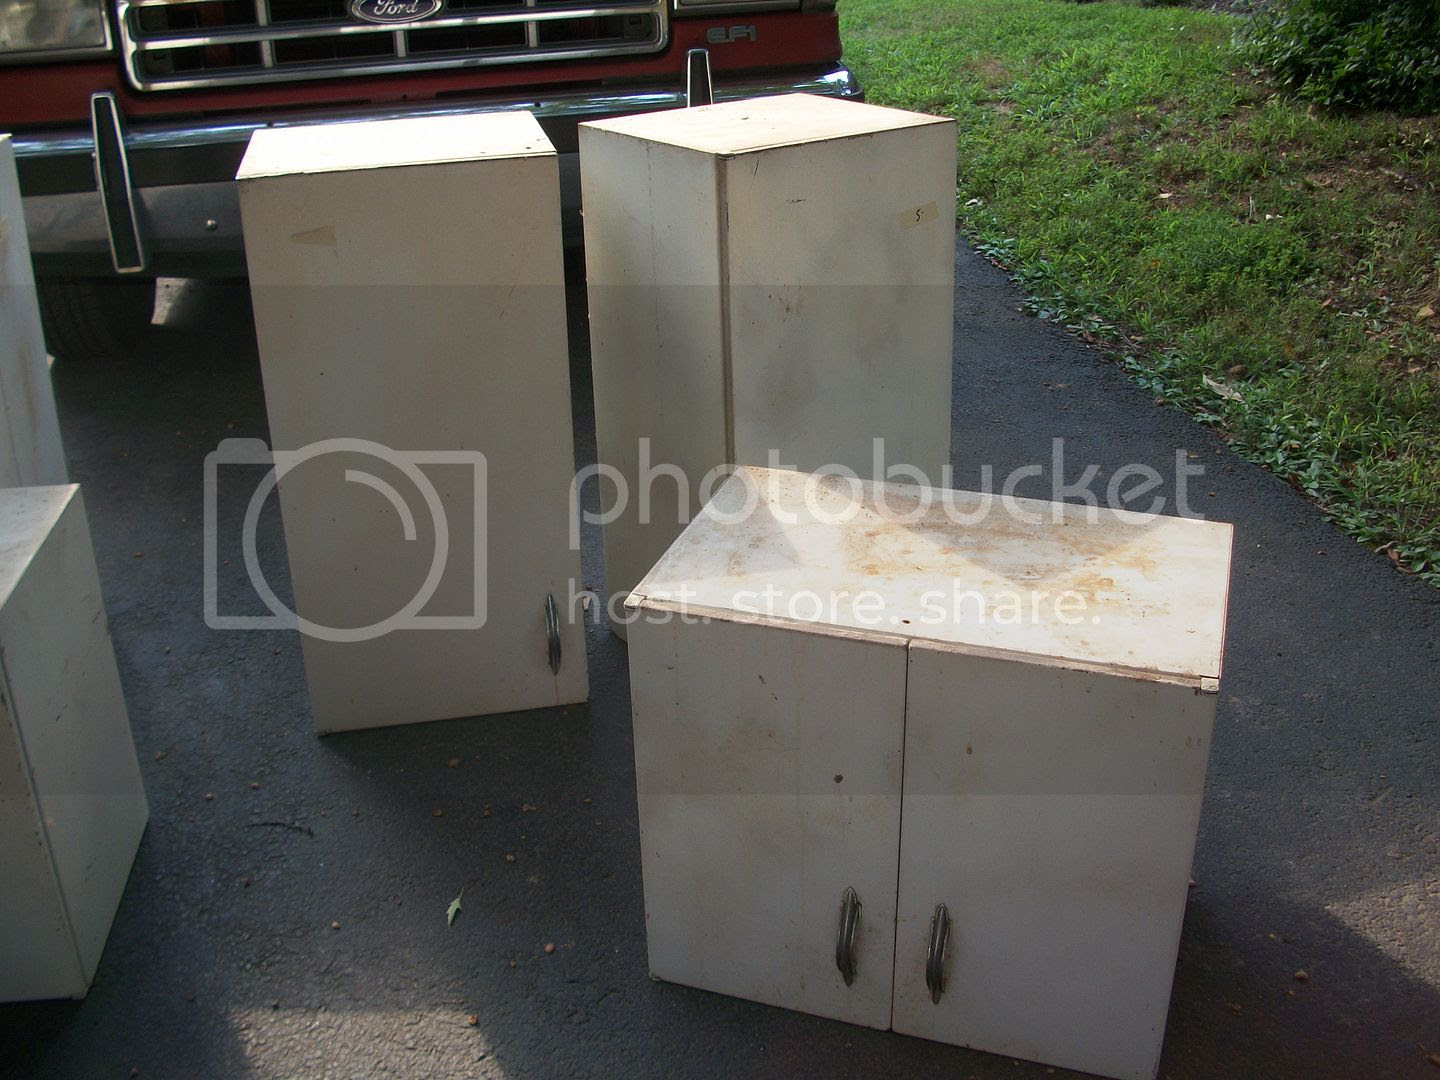 sale and thrift shop pickups  steel cabinets, typewriter, glass caddy